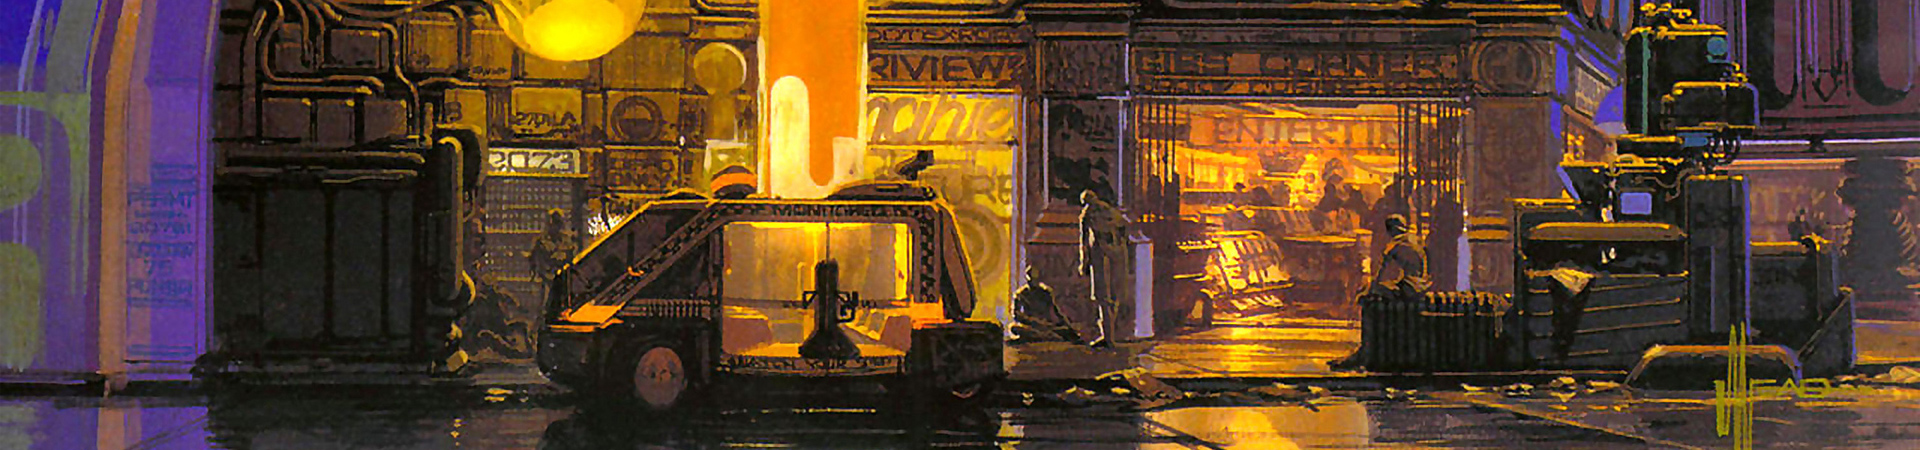 Syd Mead desings for Blade Runner-2